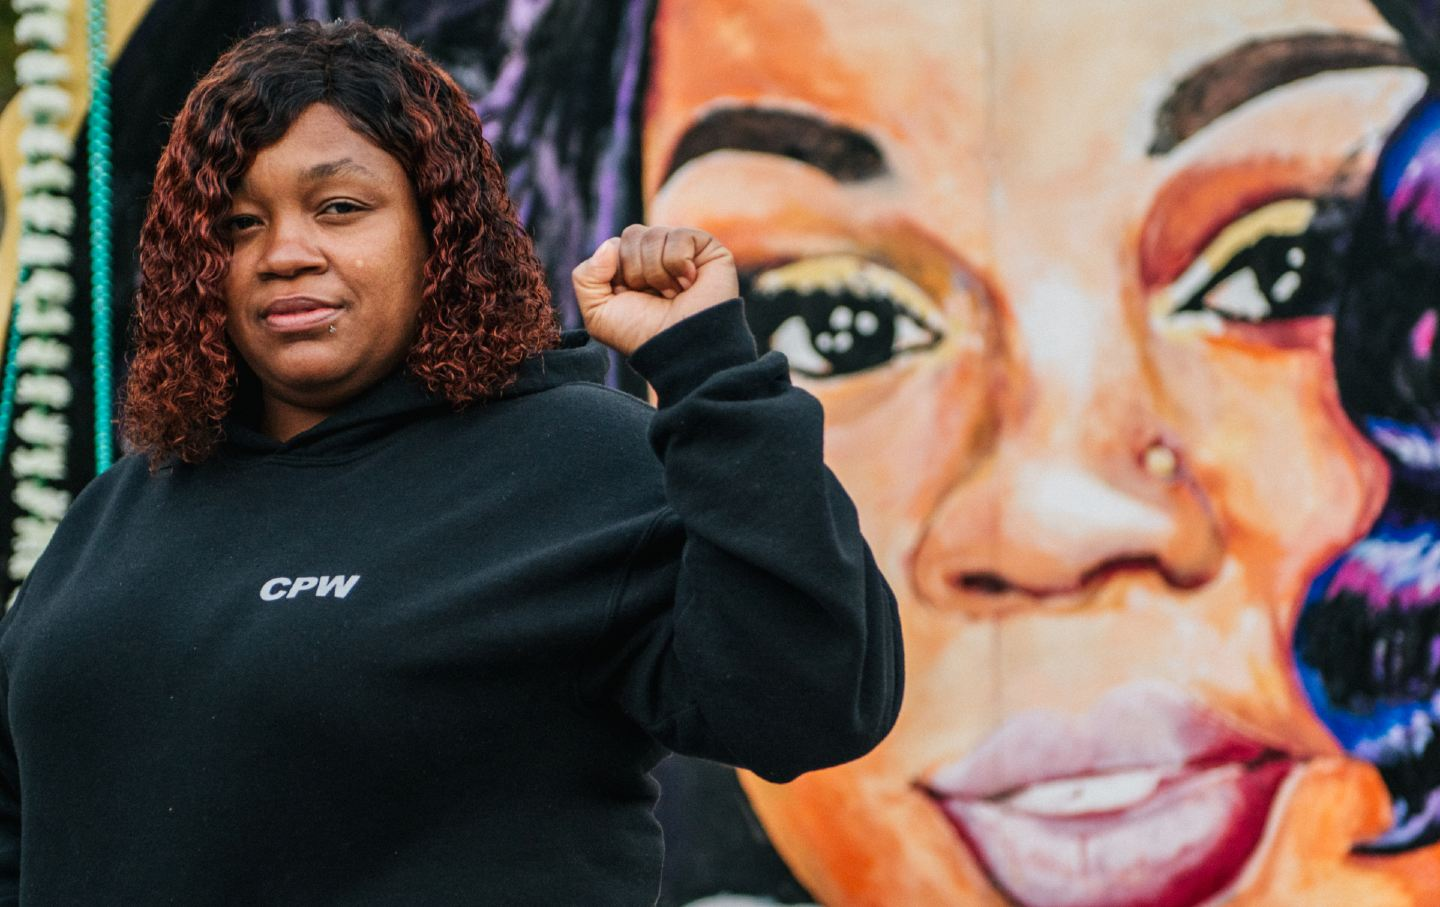 Tamika Palmer holds her first up in front of a mural of Breonna Taylor's face